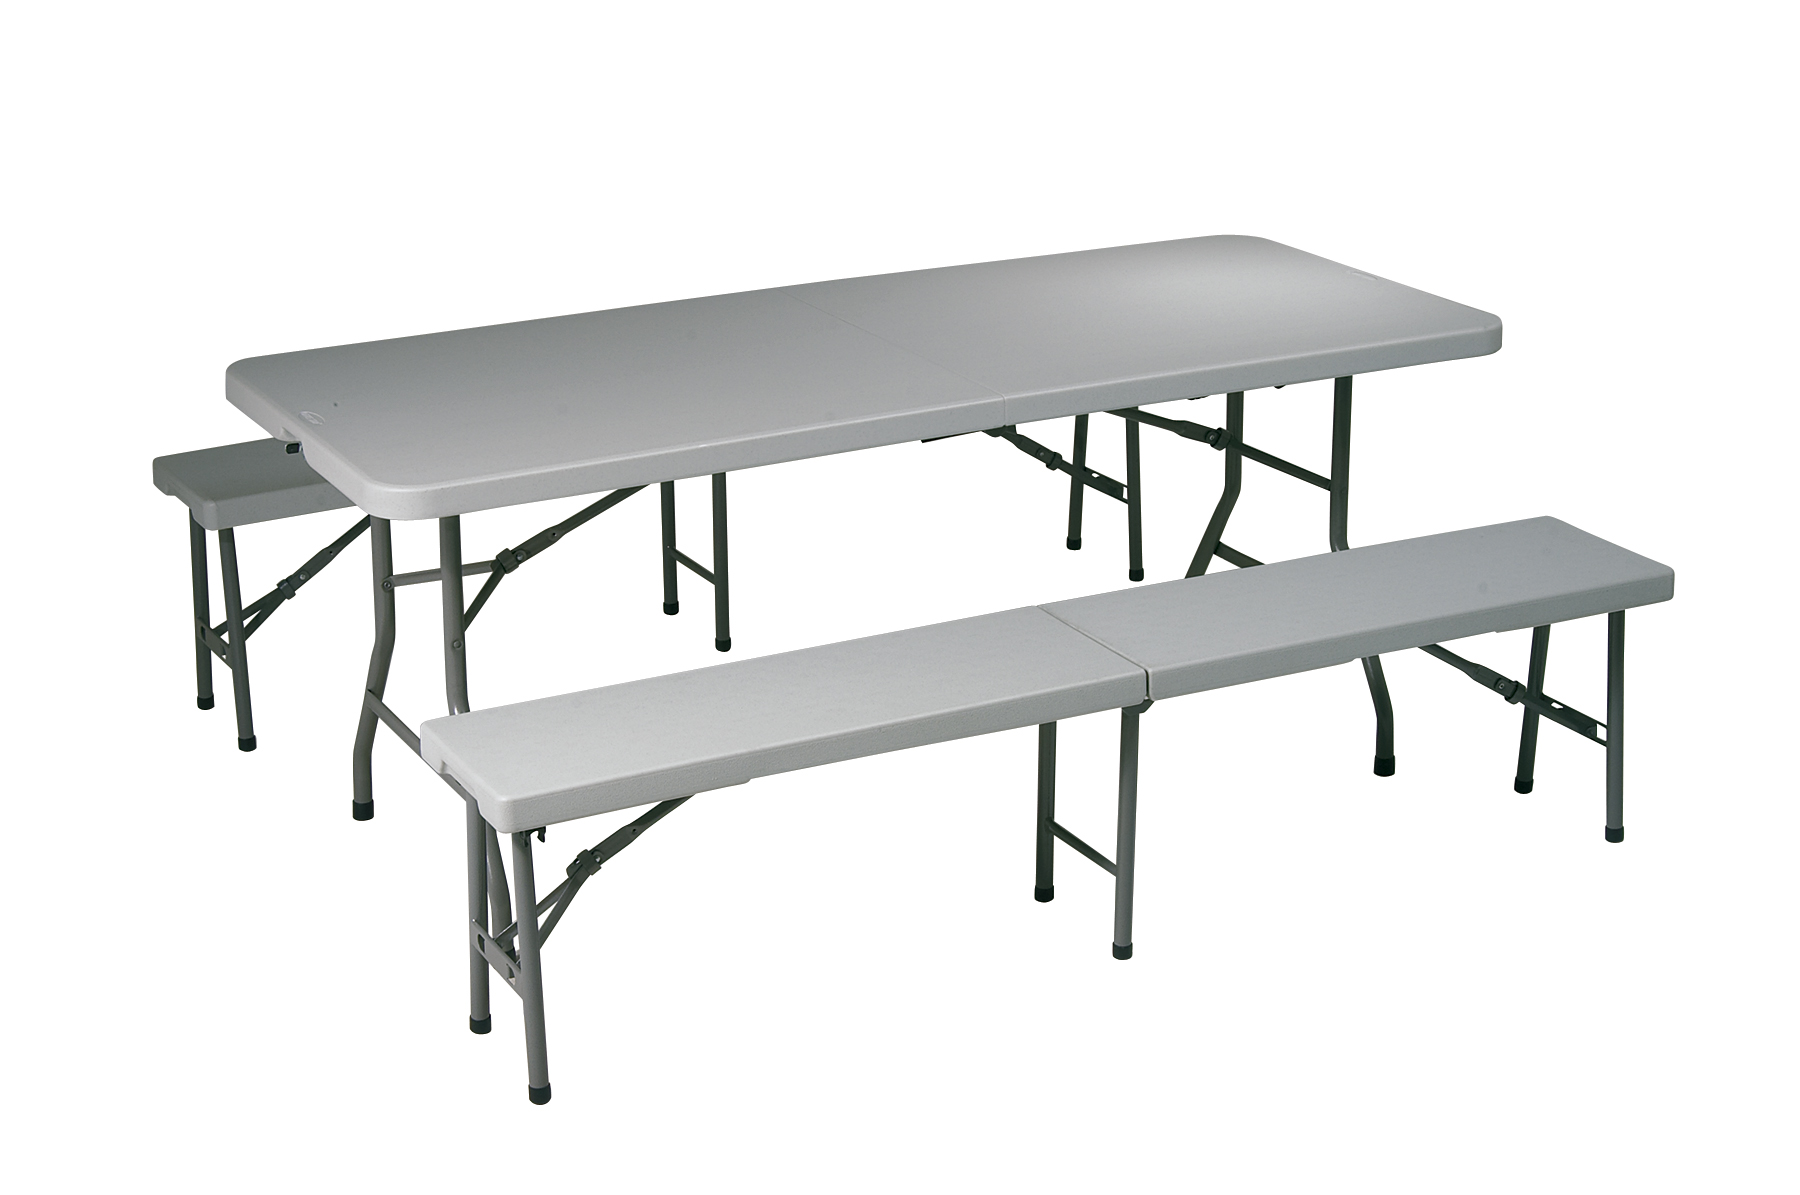 Office Star 3 Piece Folding Table And Bench Set By Oj Commerce Qt3965